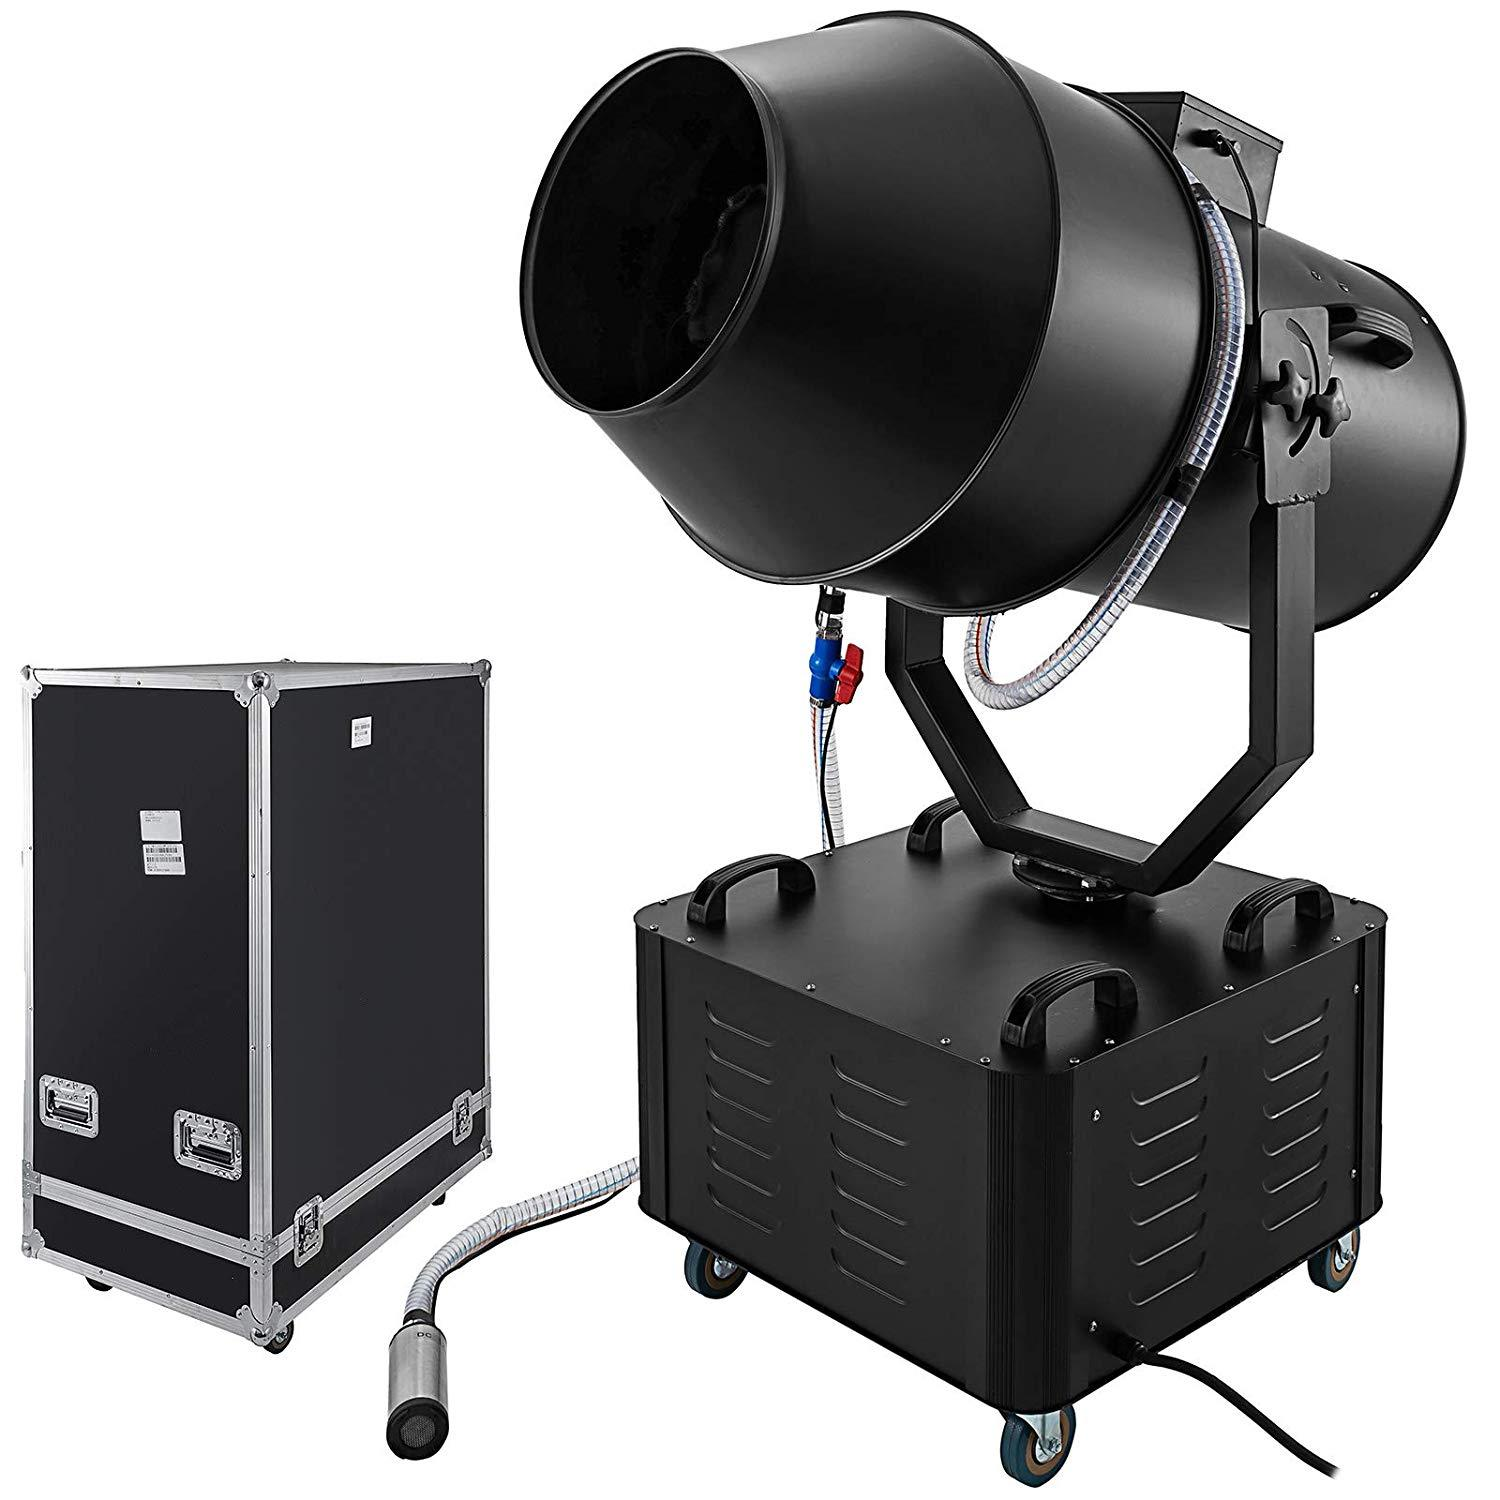 What is the characteristics of party foam jet machine